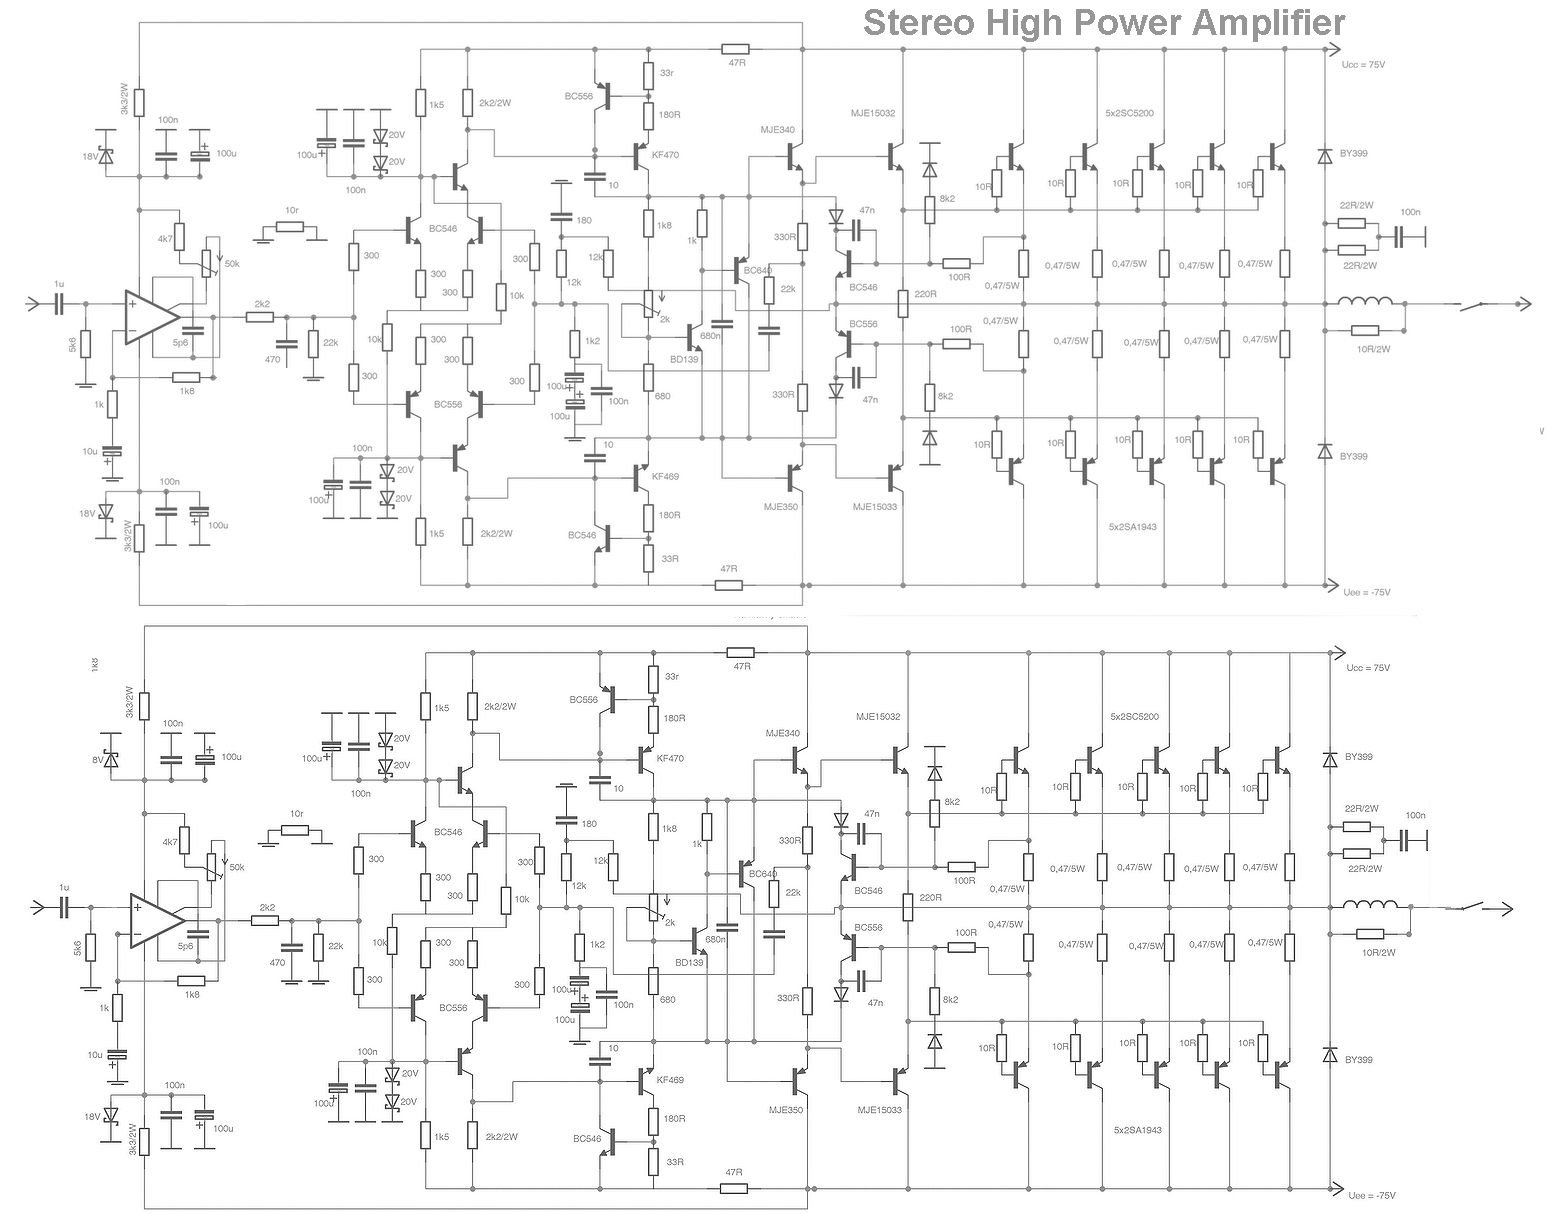 Stereo High Power Audio Amplifier Under Repository